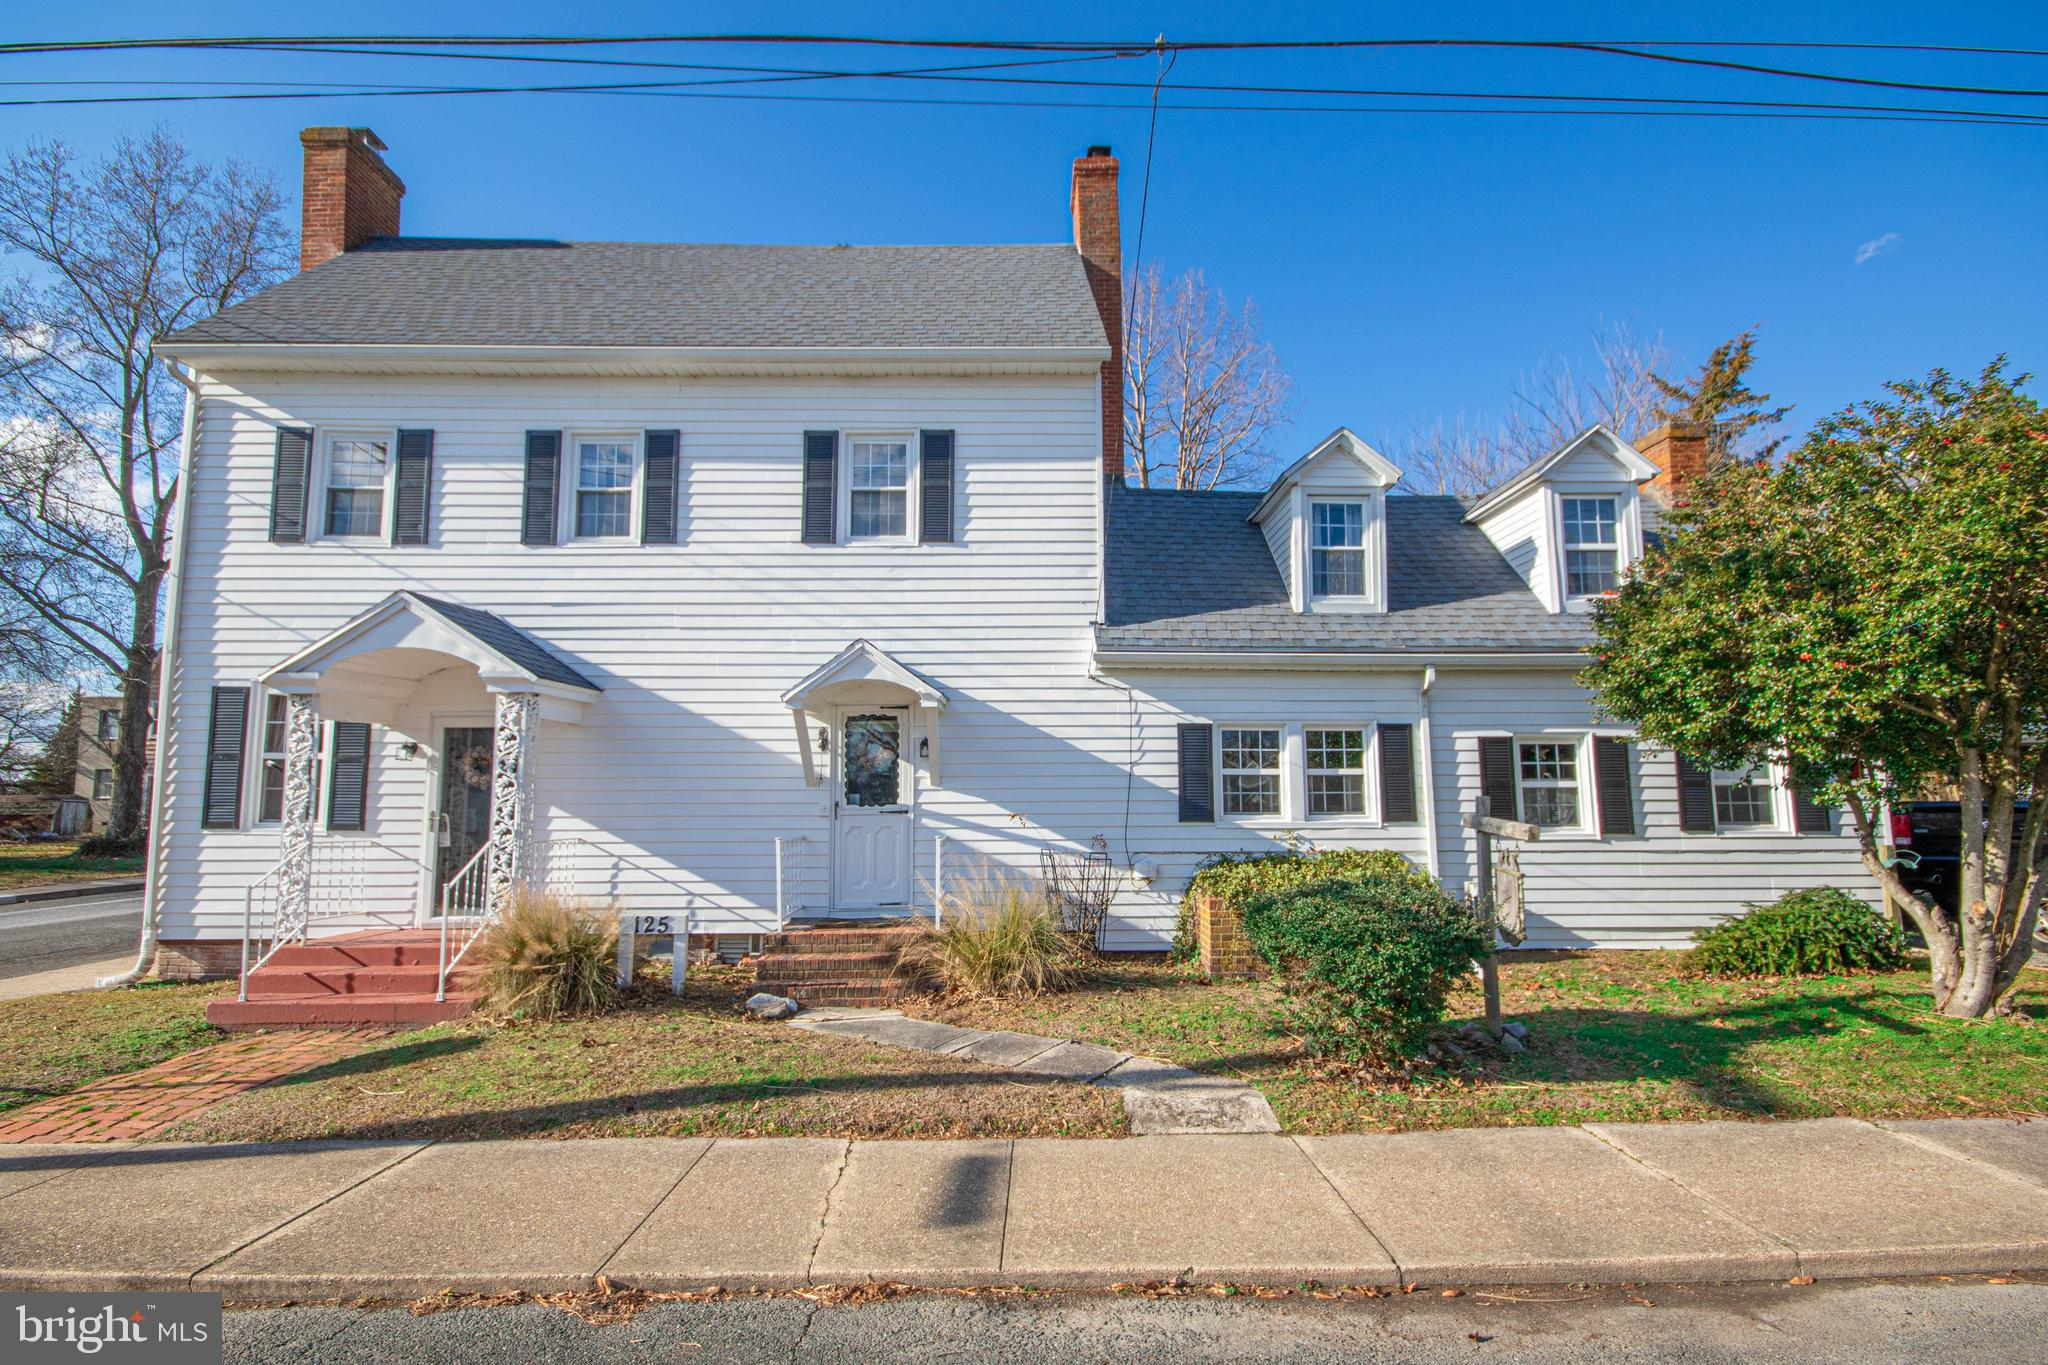 125 MIDDLE STREET, VIENNA, MD 21869